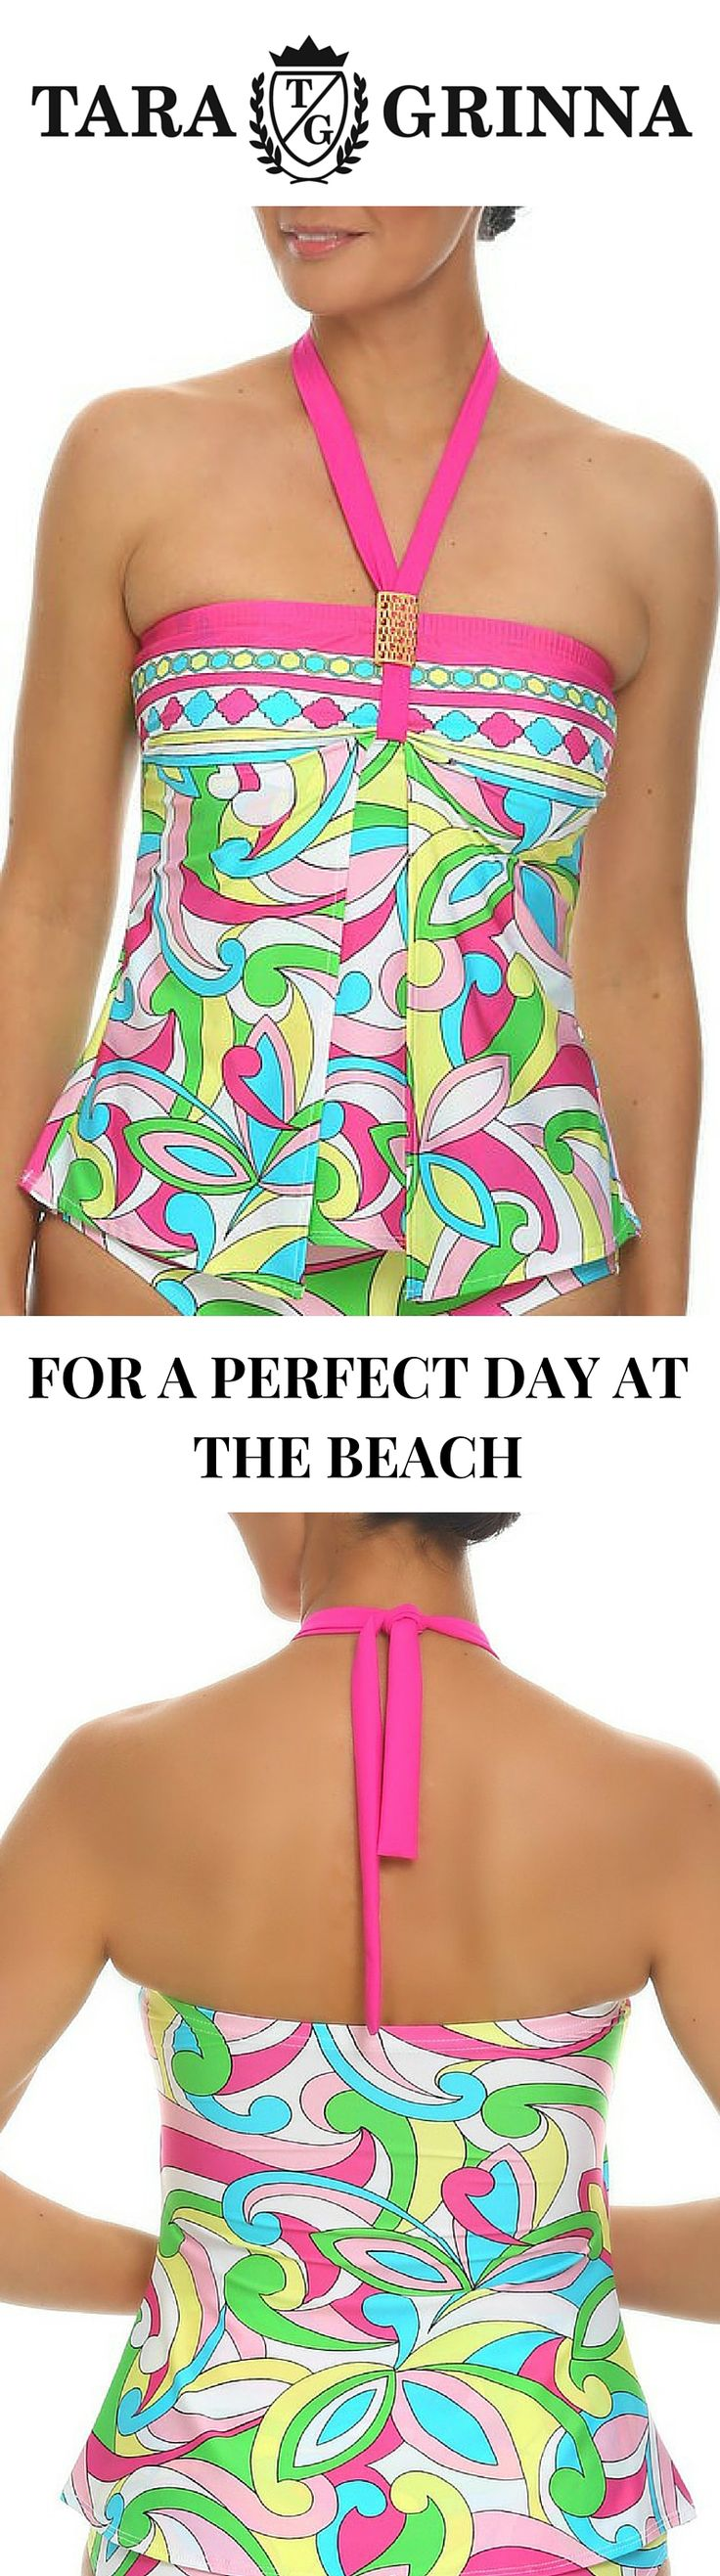 Modern floral swimsuit tankini with soft molded cups that perfectly fits average to large cup sizes. This floral tankini top with a split front overlay offers memorable appearance. It comes with a neck strap that can be worn in several different ways.  Celebrate your vacation with this floral swimwear tankini top and bring your beach style to life http://store.taragrinna-swimwear.com/